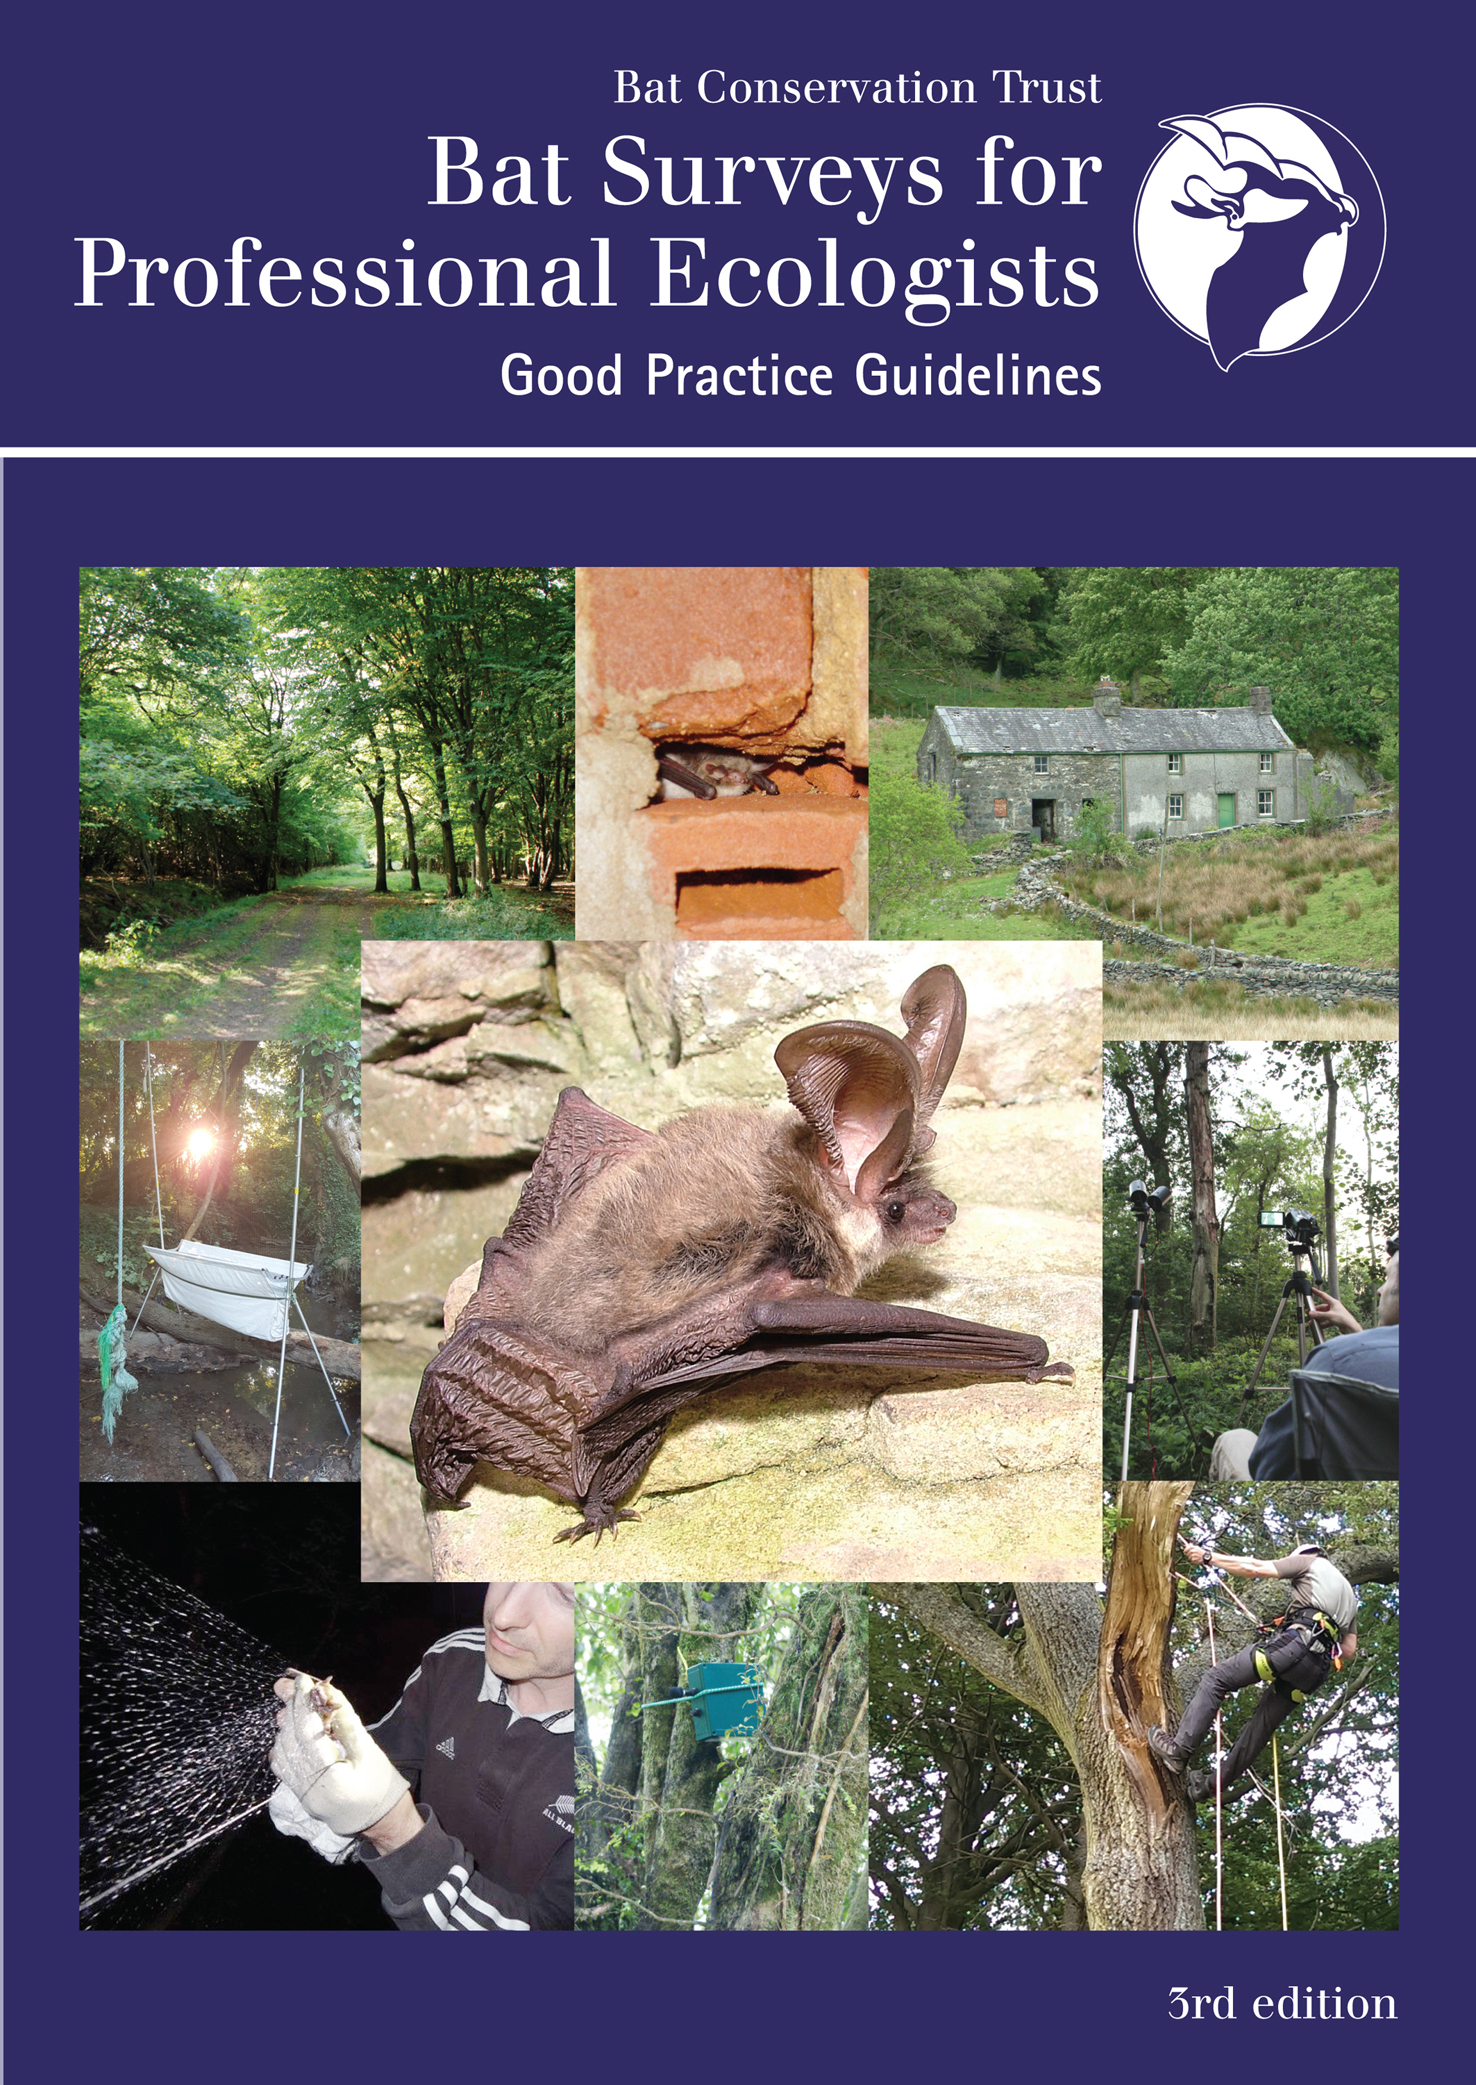 Bat Surveys for Professional Ecologists: Good Practice Guidelines 3rd edition